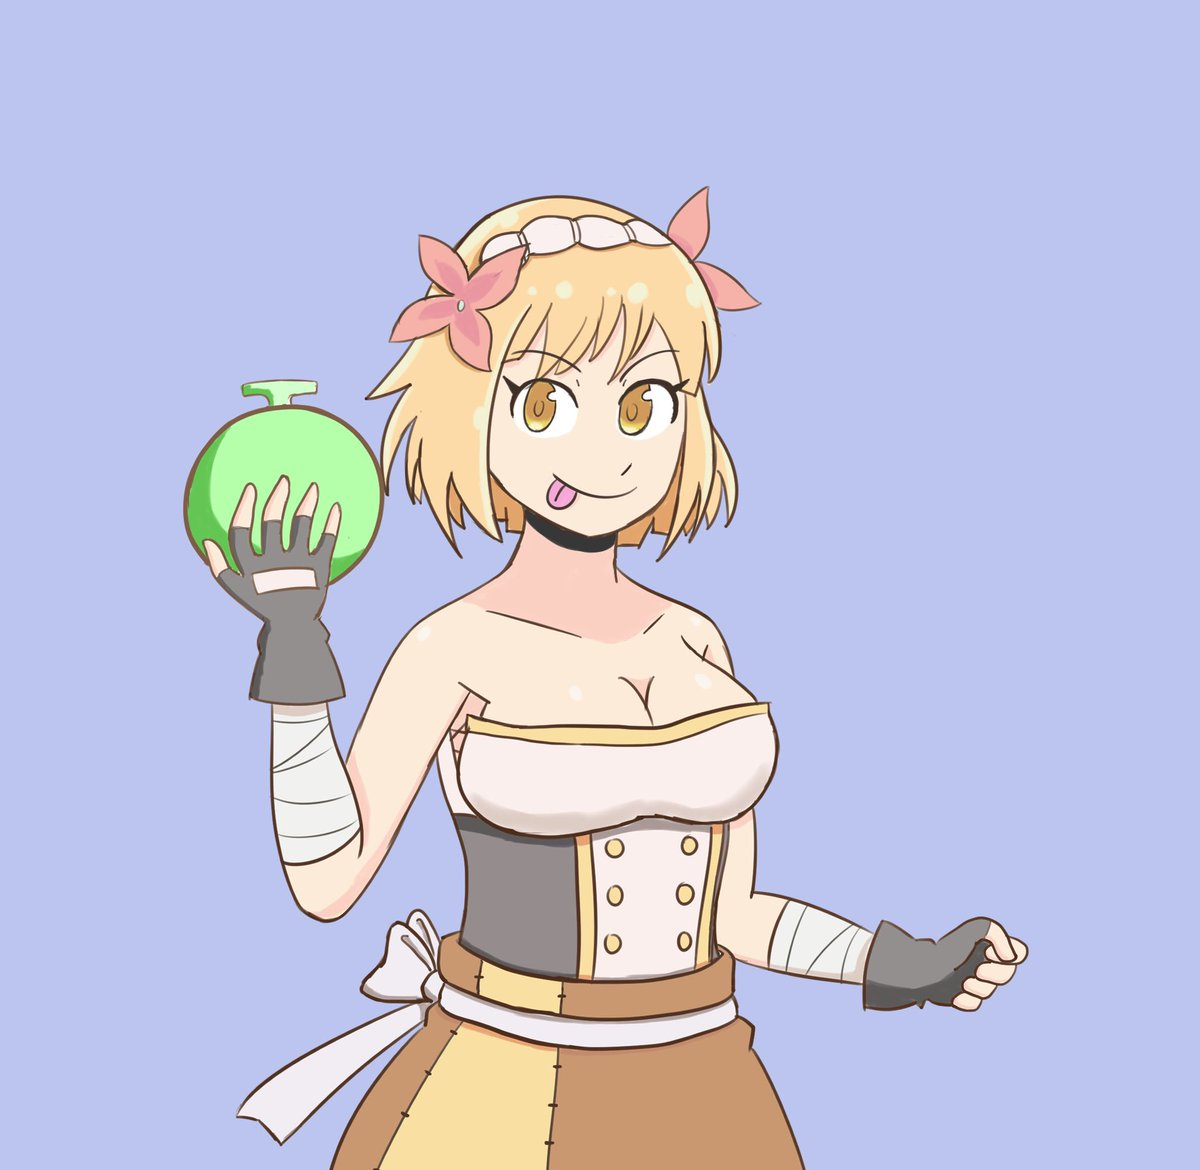 RT @SpookySpaghettE: A drawing of #FaiFai from #Endro! https://t.co/Hib3z5WjWp